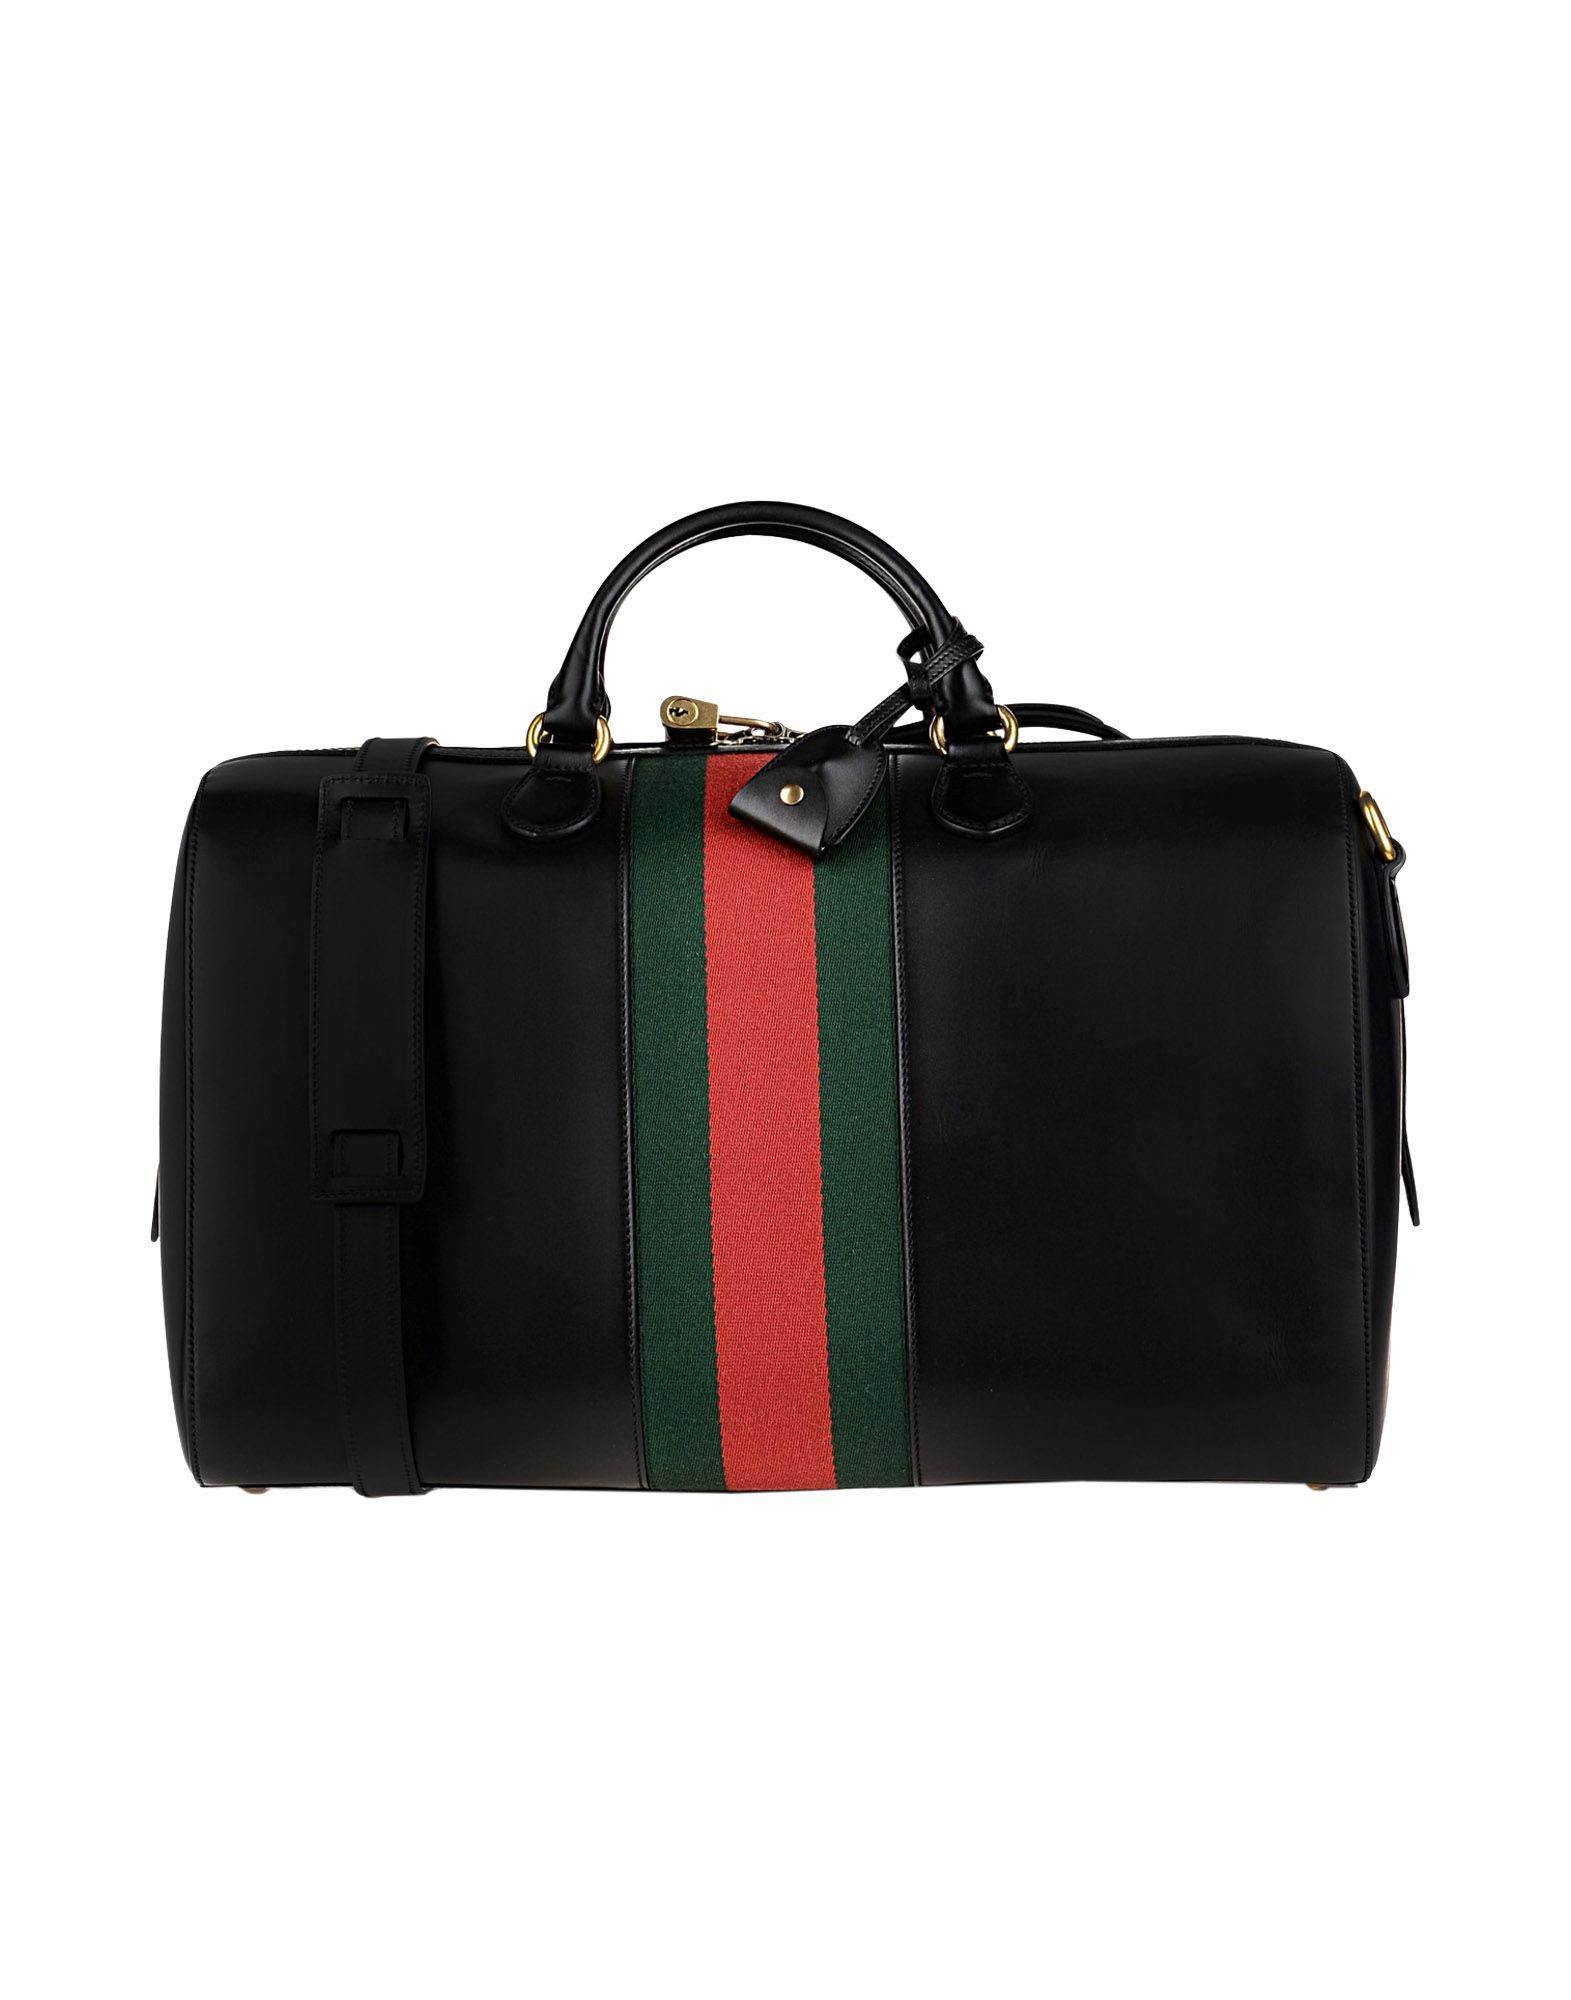 af5d6c36c8a0 GUCCI . #gucci #bags #leather #travel bags #suitcase # | Gucci in ...